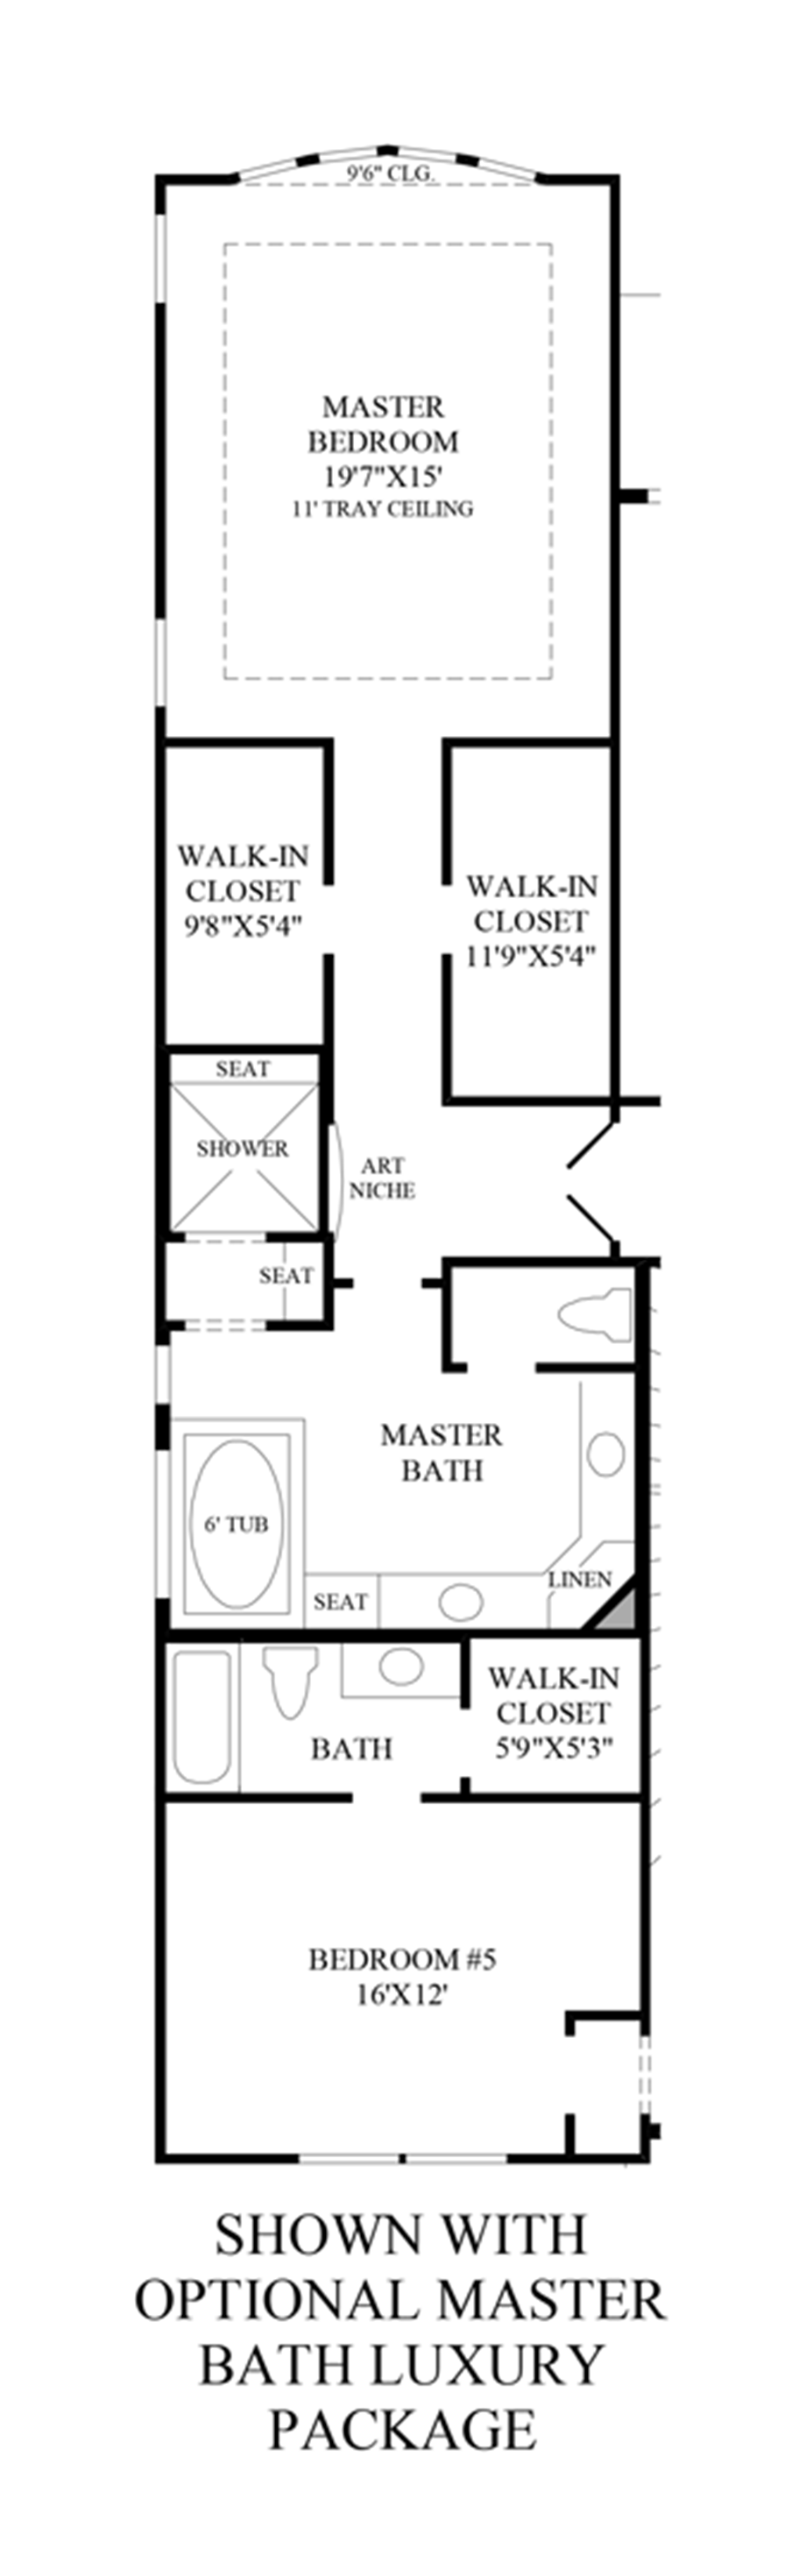 Cane island the venetian home design for Luxury master bath floor plans